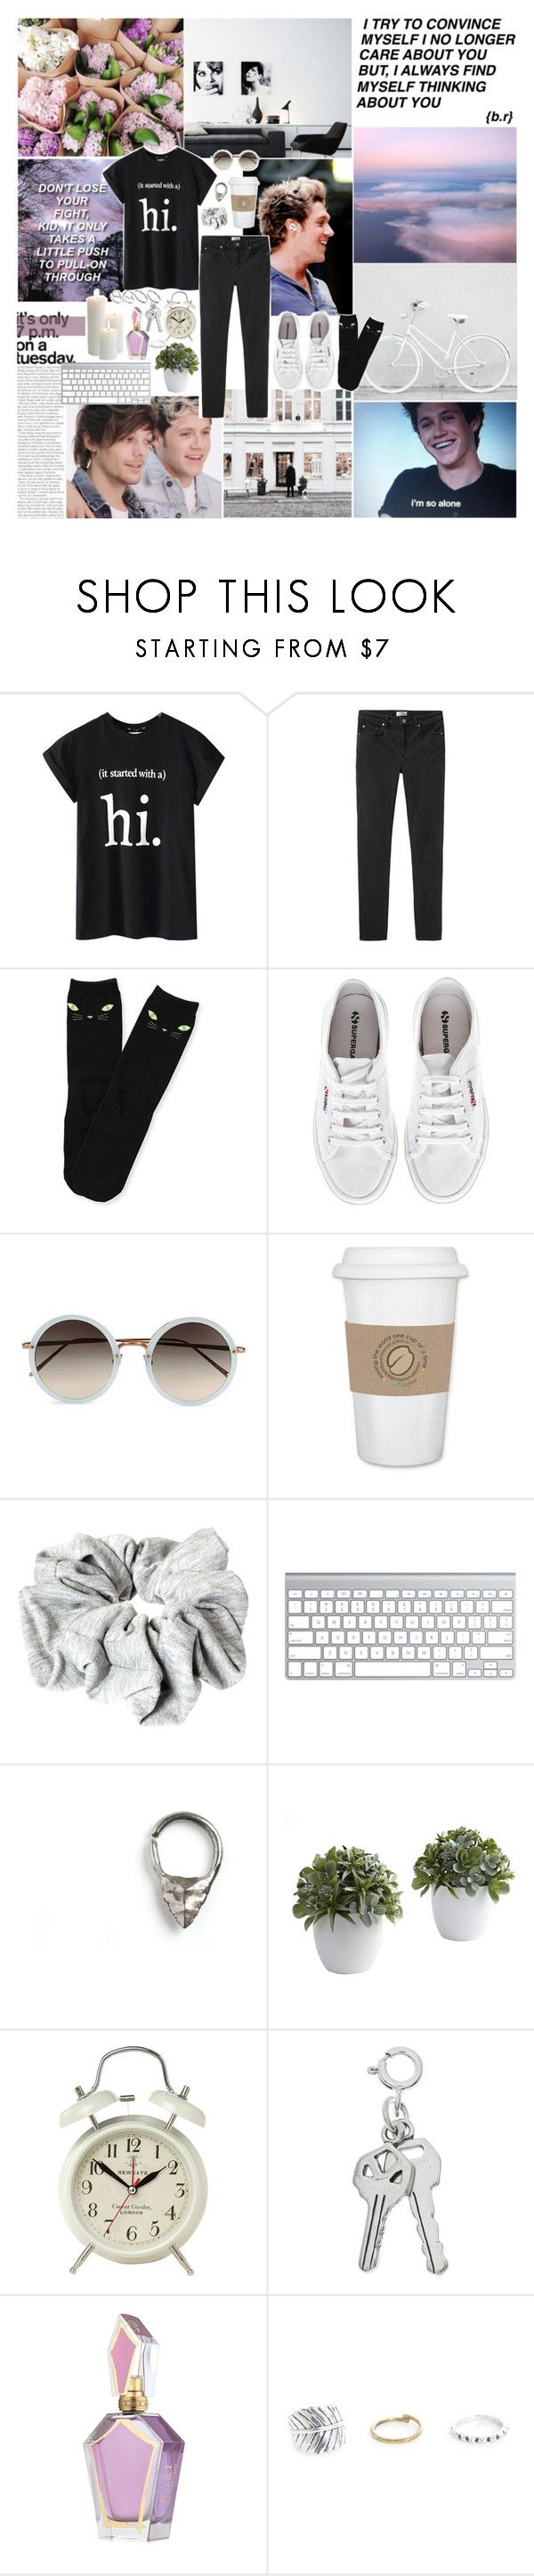 """""""happy birthday my sunshine, niall horan!!!"""" by haylekayle ❤ liked on Polyvore featuring memento, Chicnova Fashion, Acne Studios, Aéropostale, Superga, Linda Farrow, WALL, ASOS, Rachel Entwistle and Nearly Natural"""